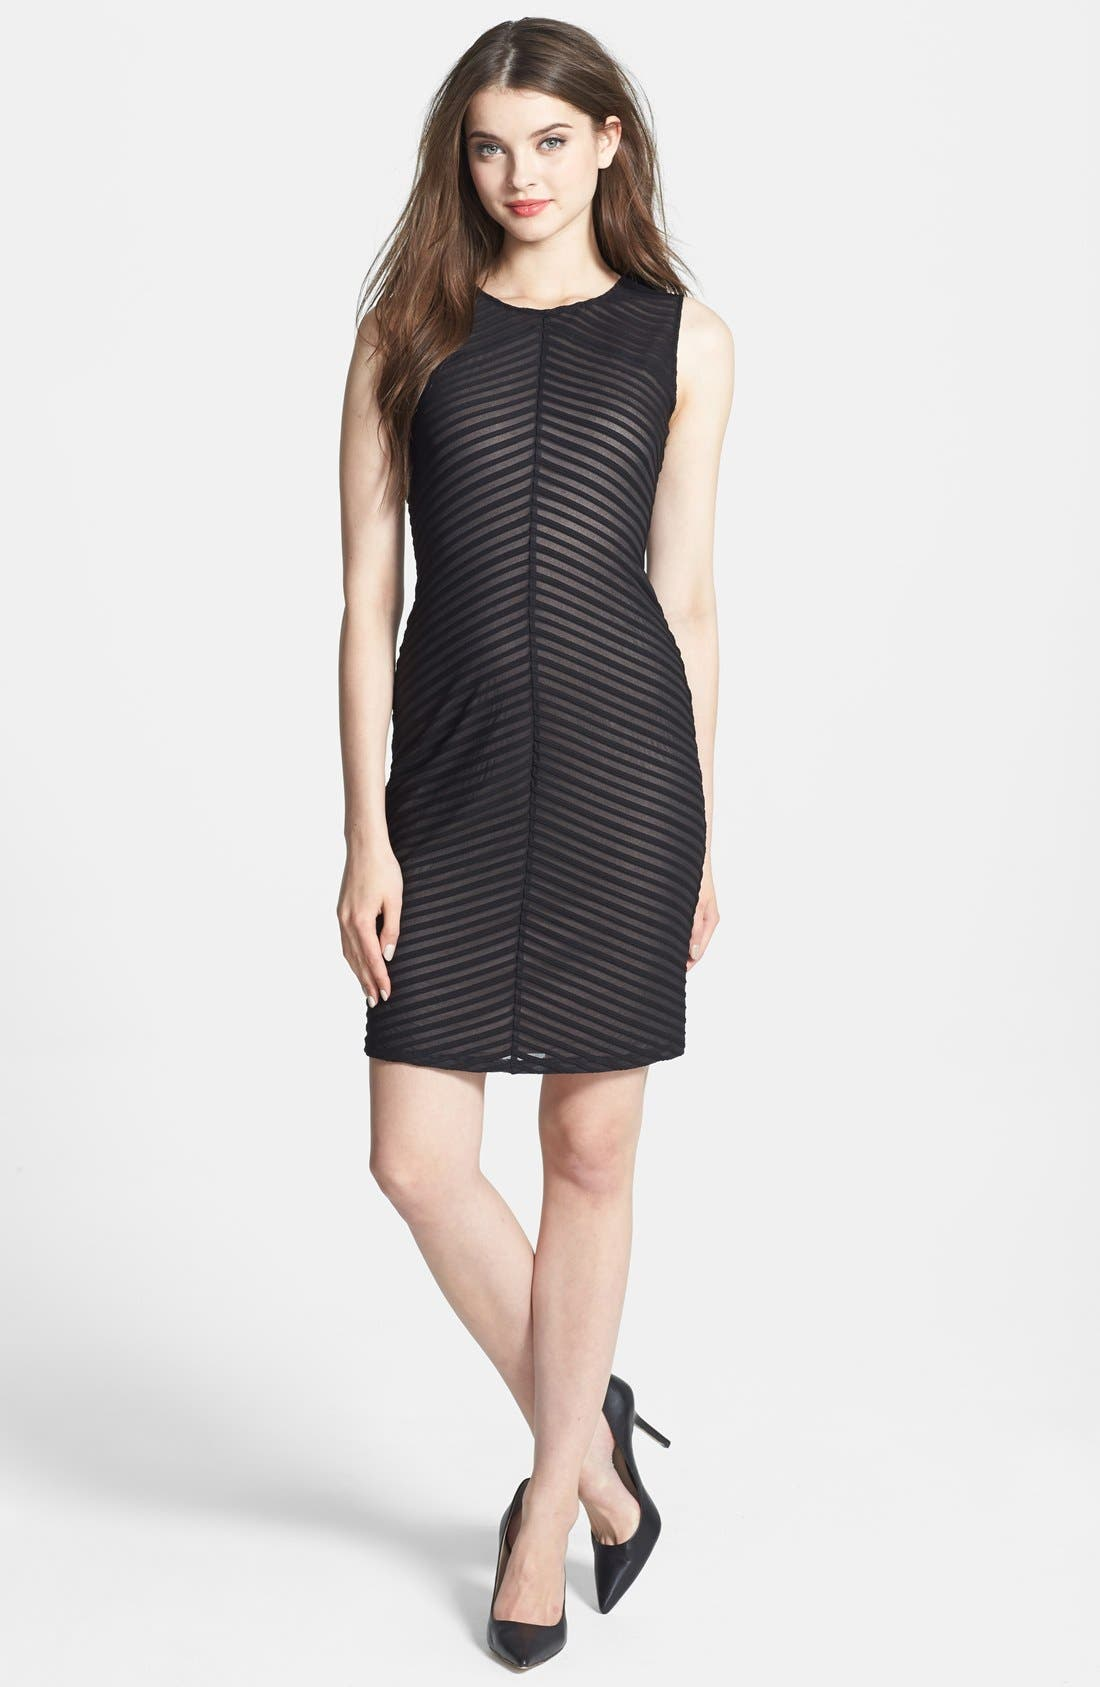 Main Image - Calvin Klein Contrast Lined Stretch Knit Sheath Dress